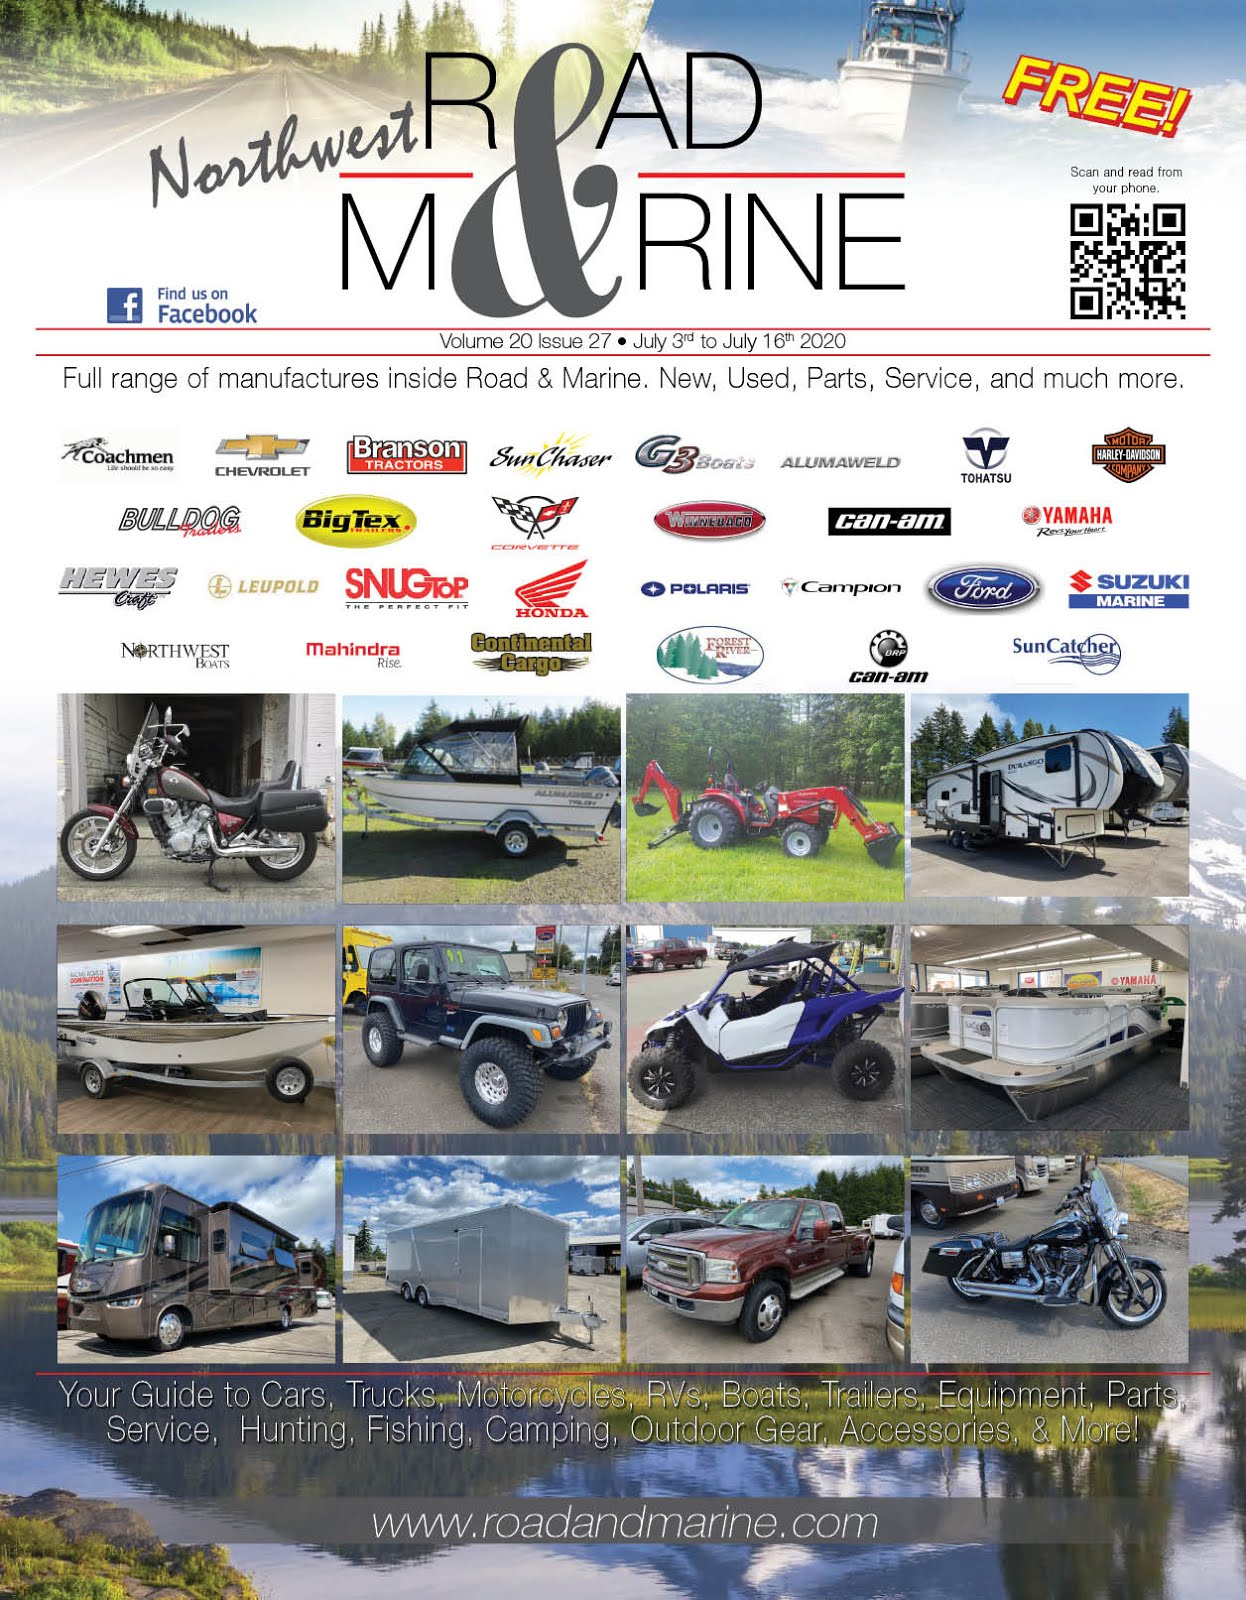 Buying-Selling-Trading? Then Check Out NW Road & Marine Magazine!!